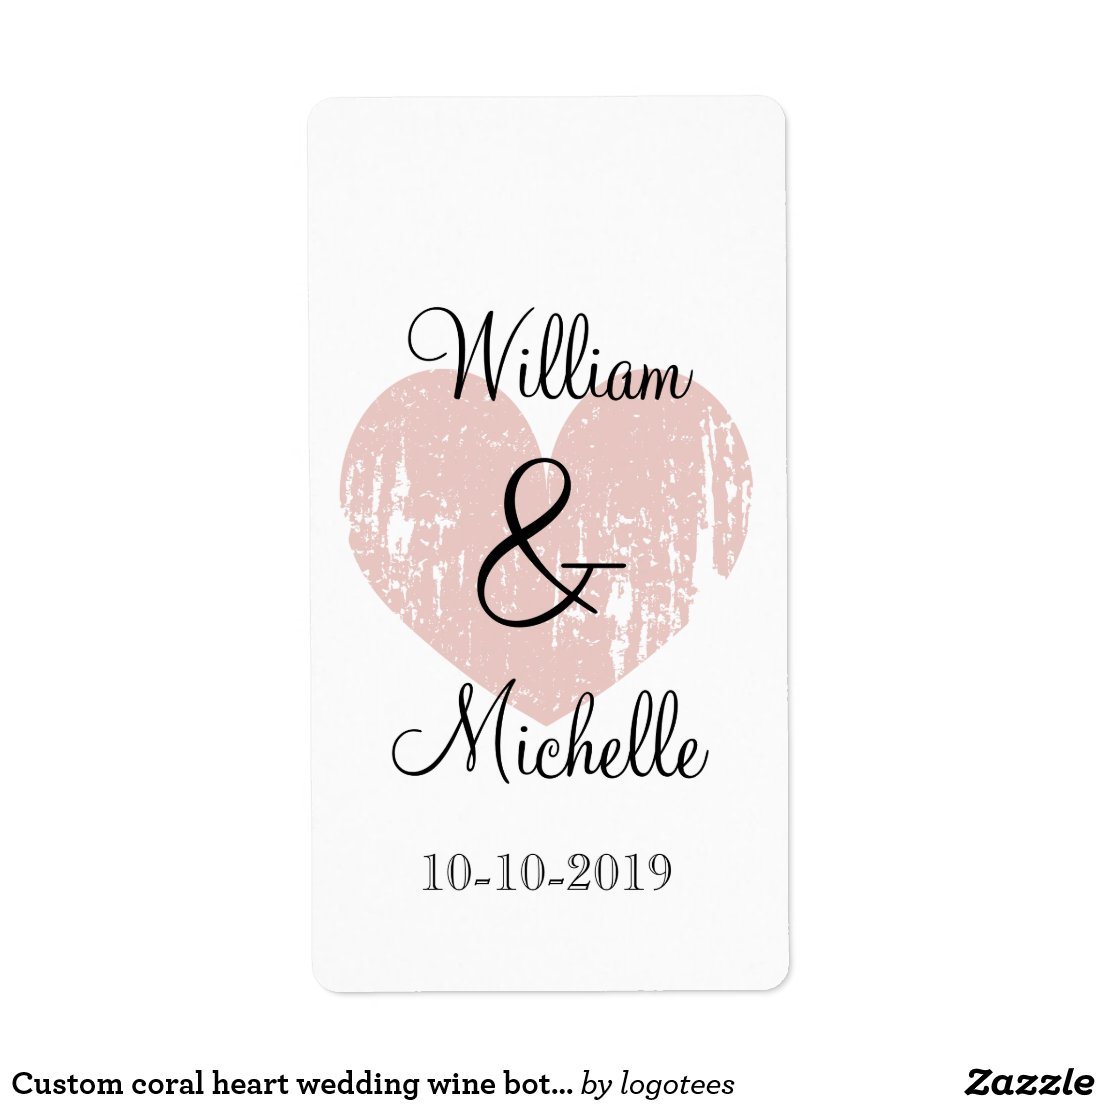 Custom coral heart wedding wine bottle labels